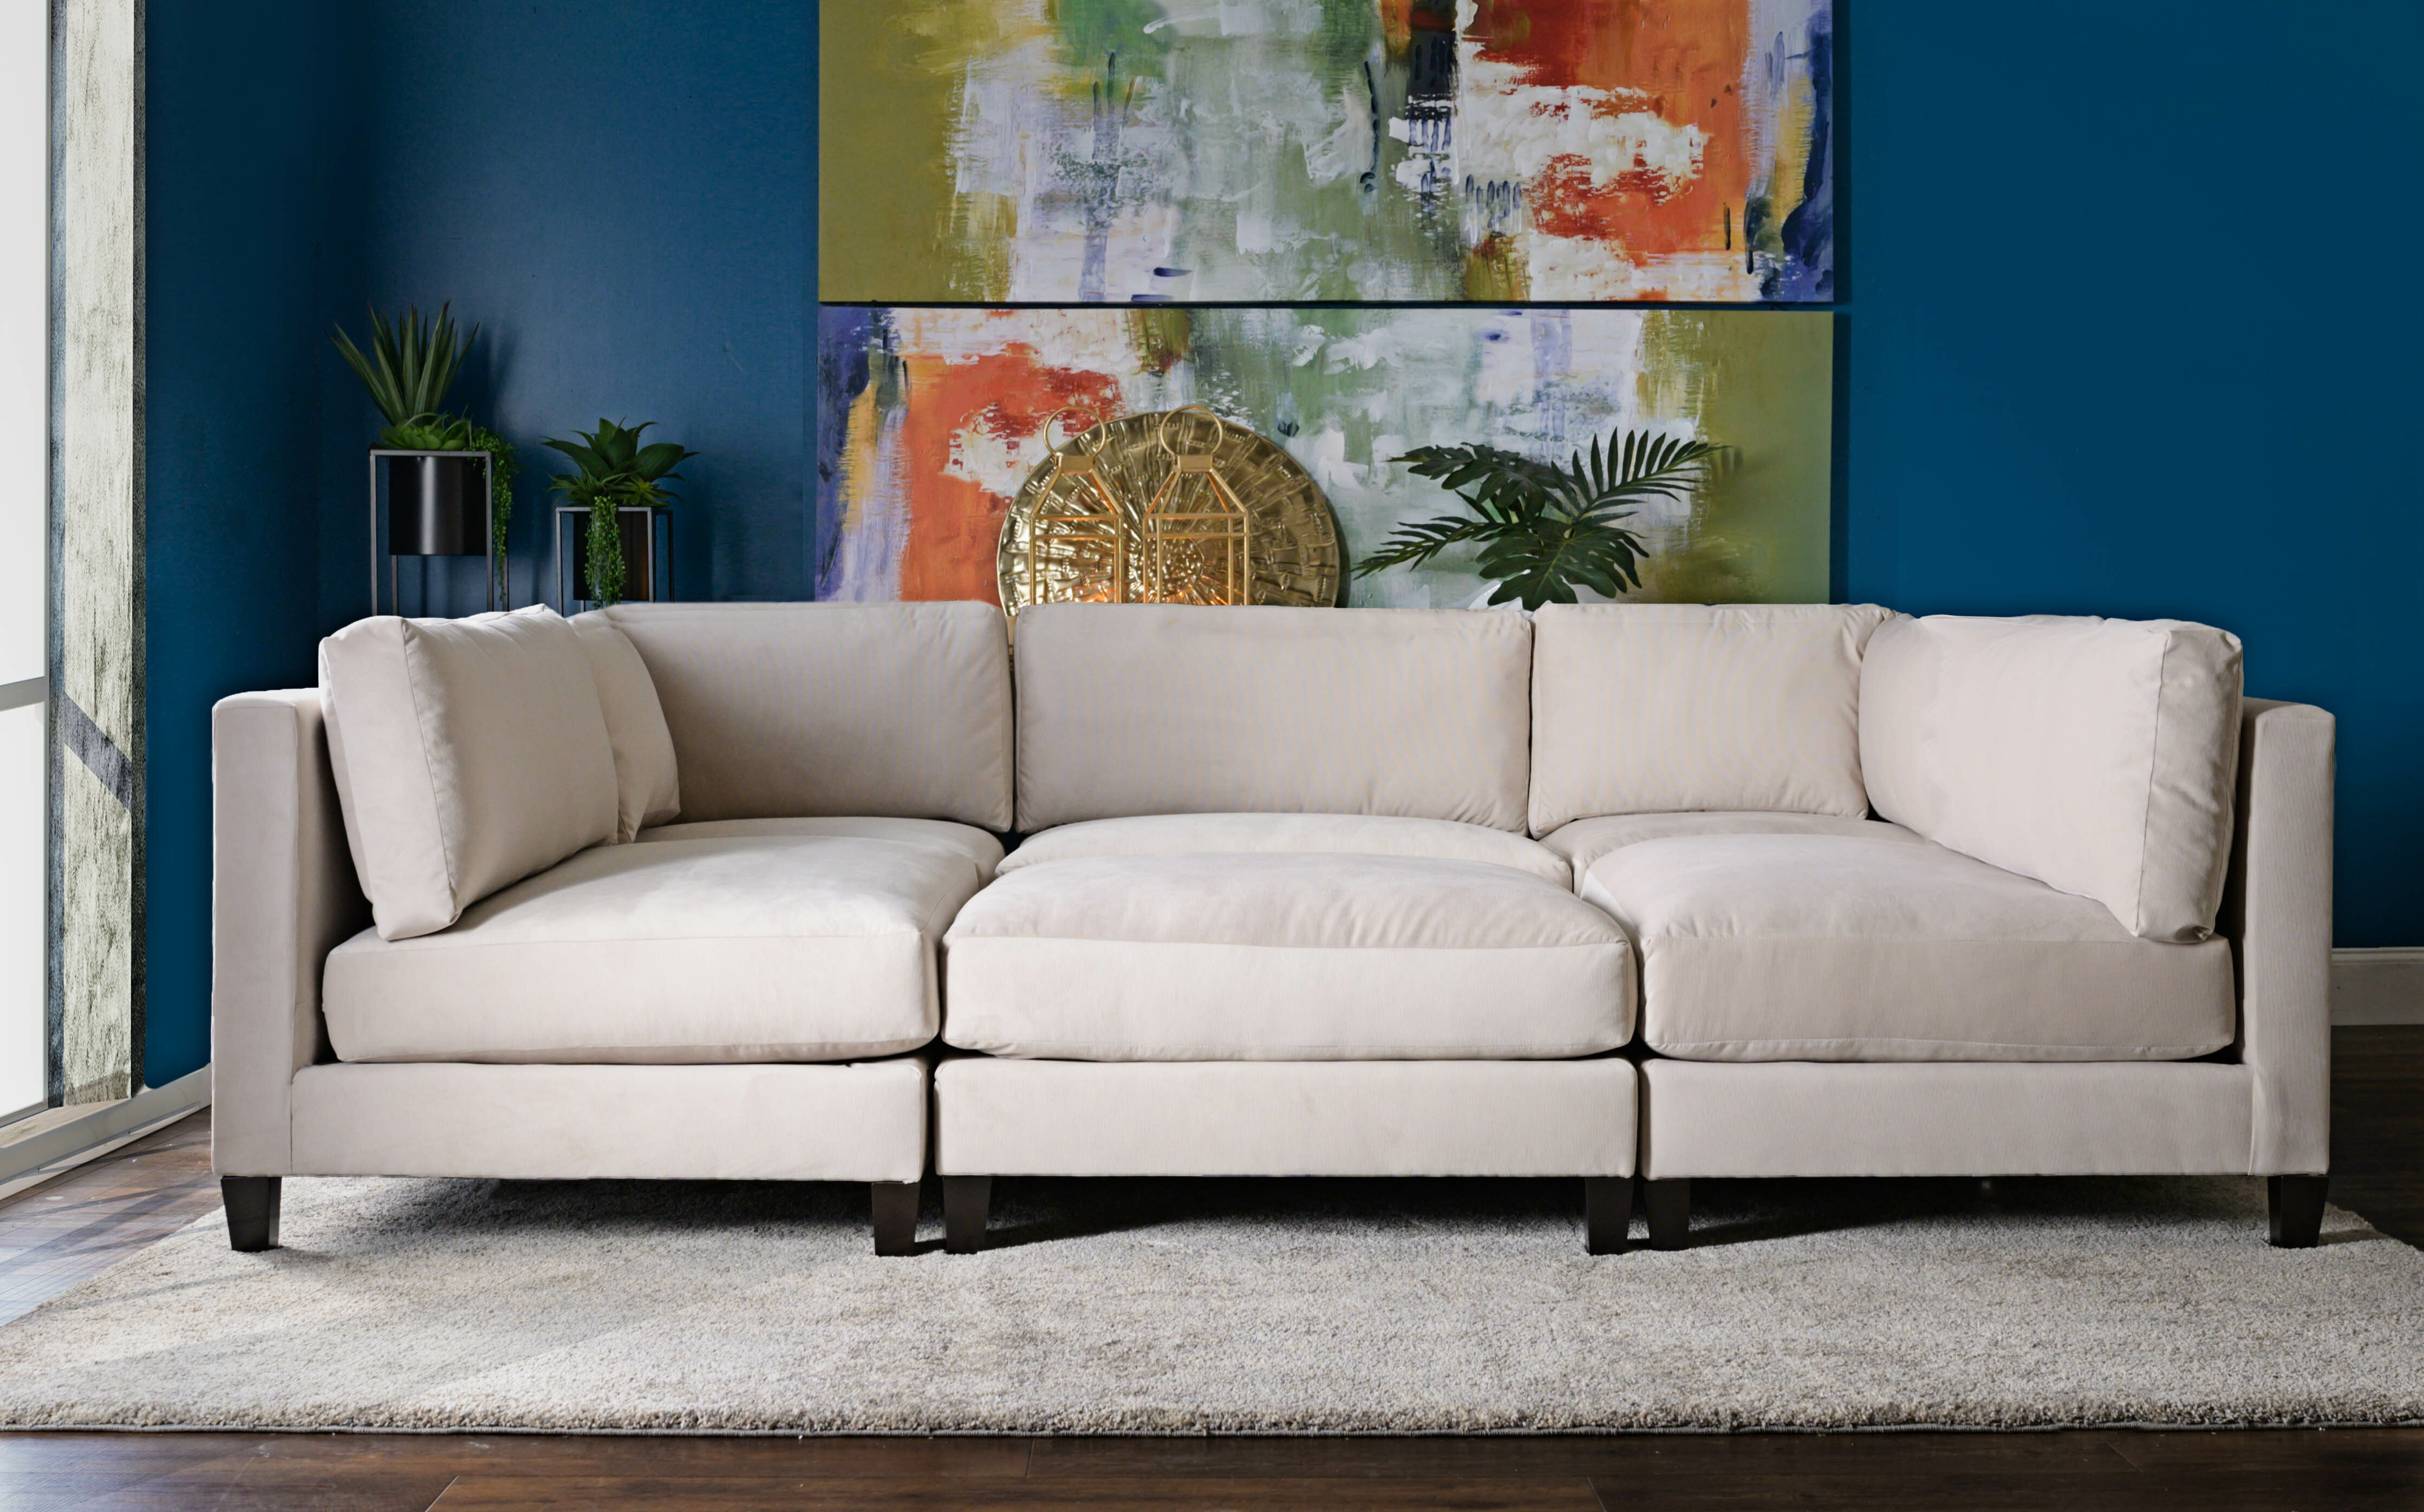 Fine Chelsea Reversible Sleeper Sectional With Ottoman Dailytribune Chair Design For Home Dailytribuneorg